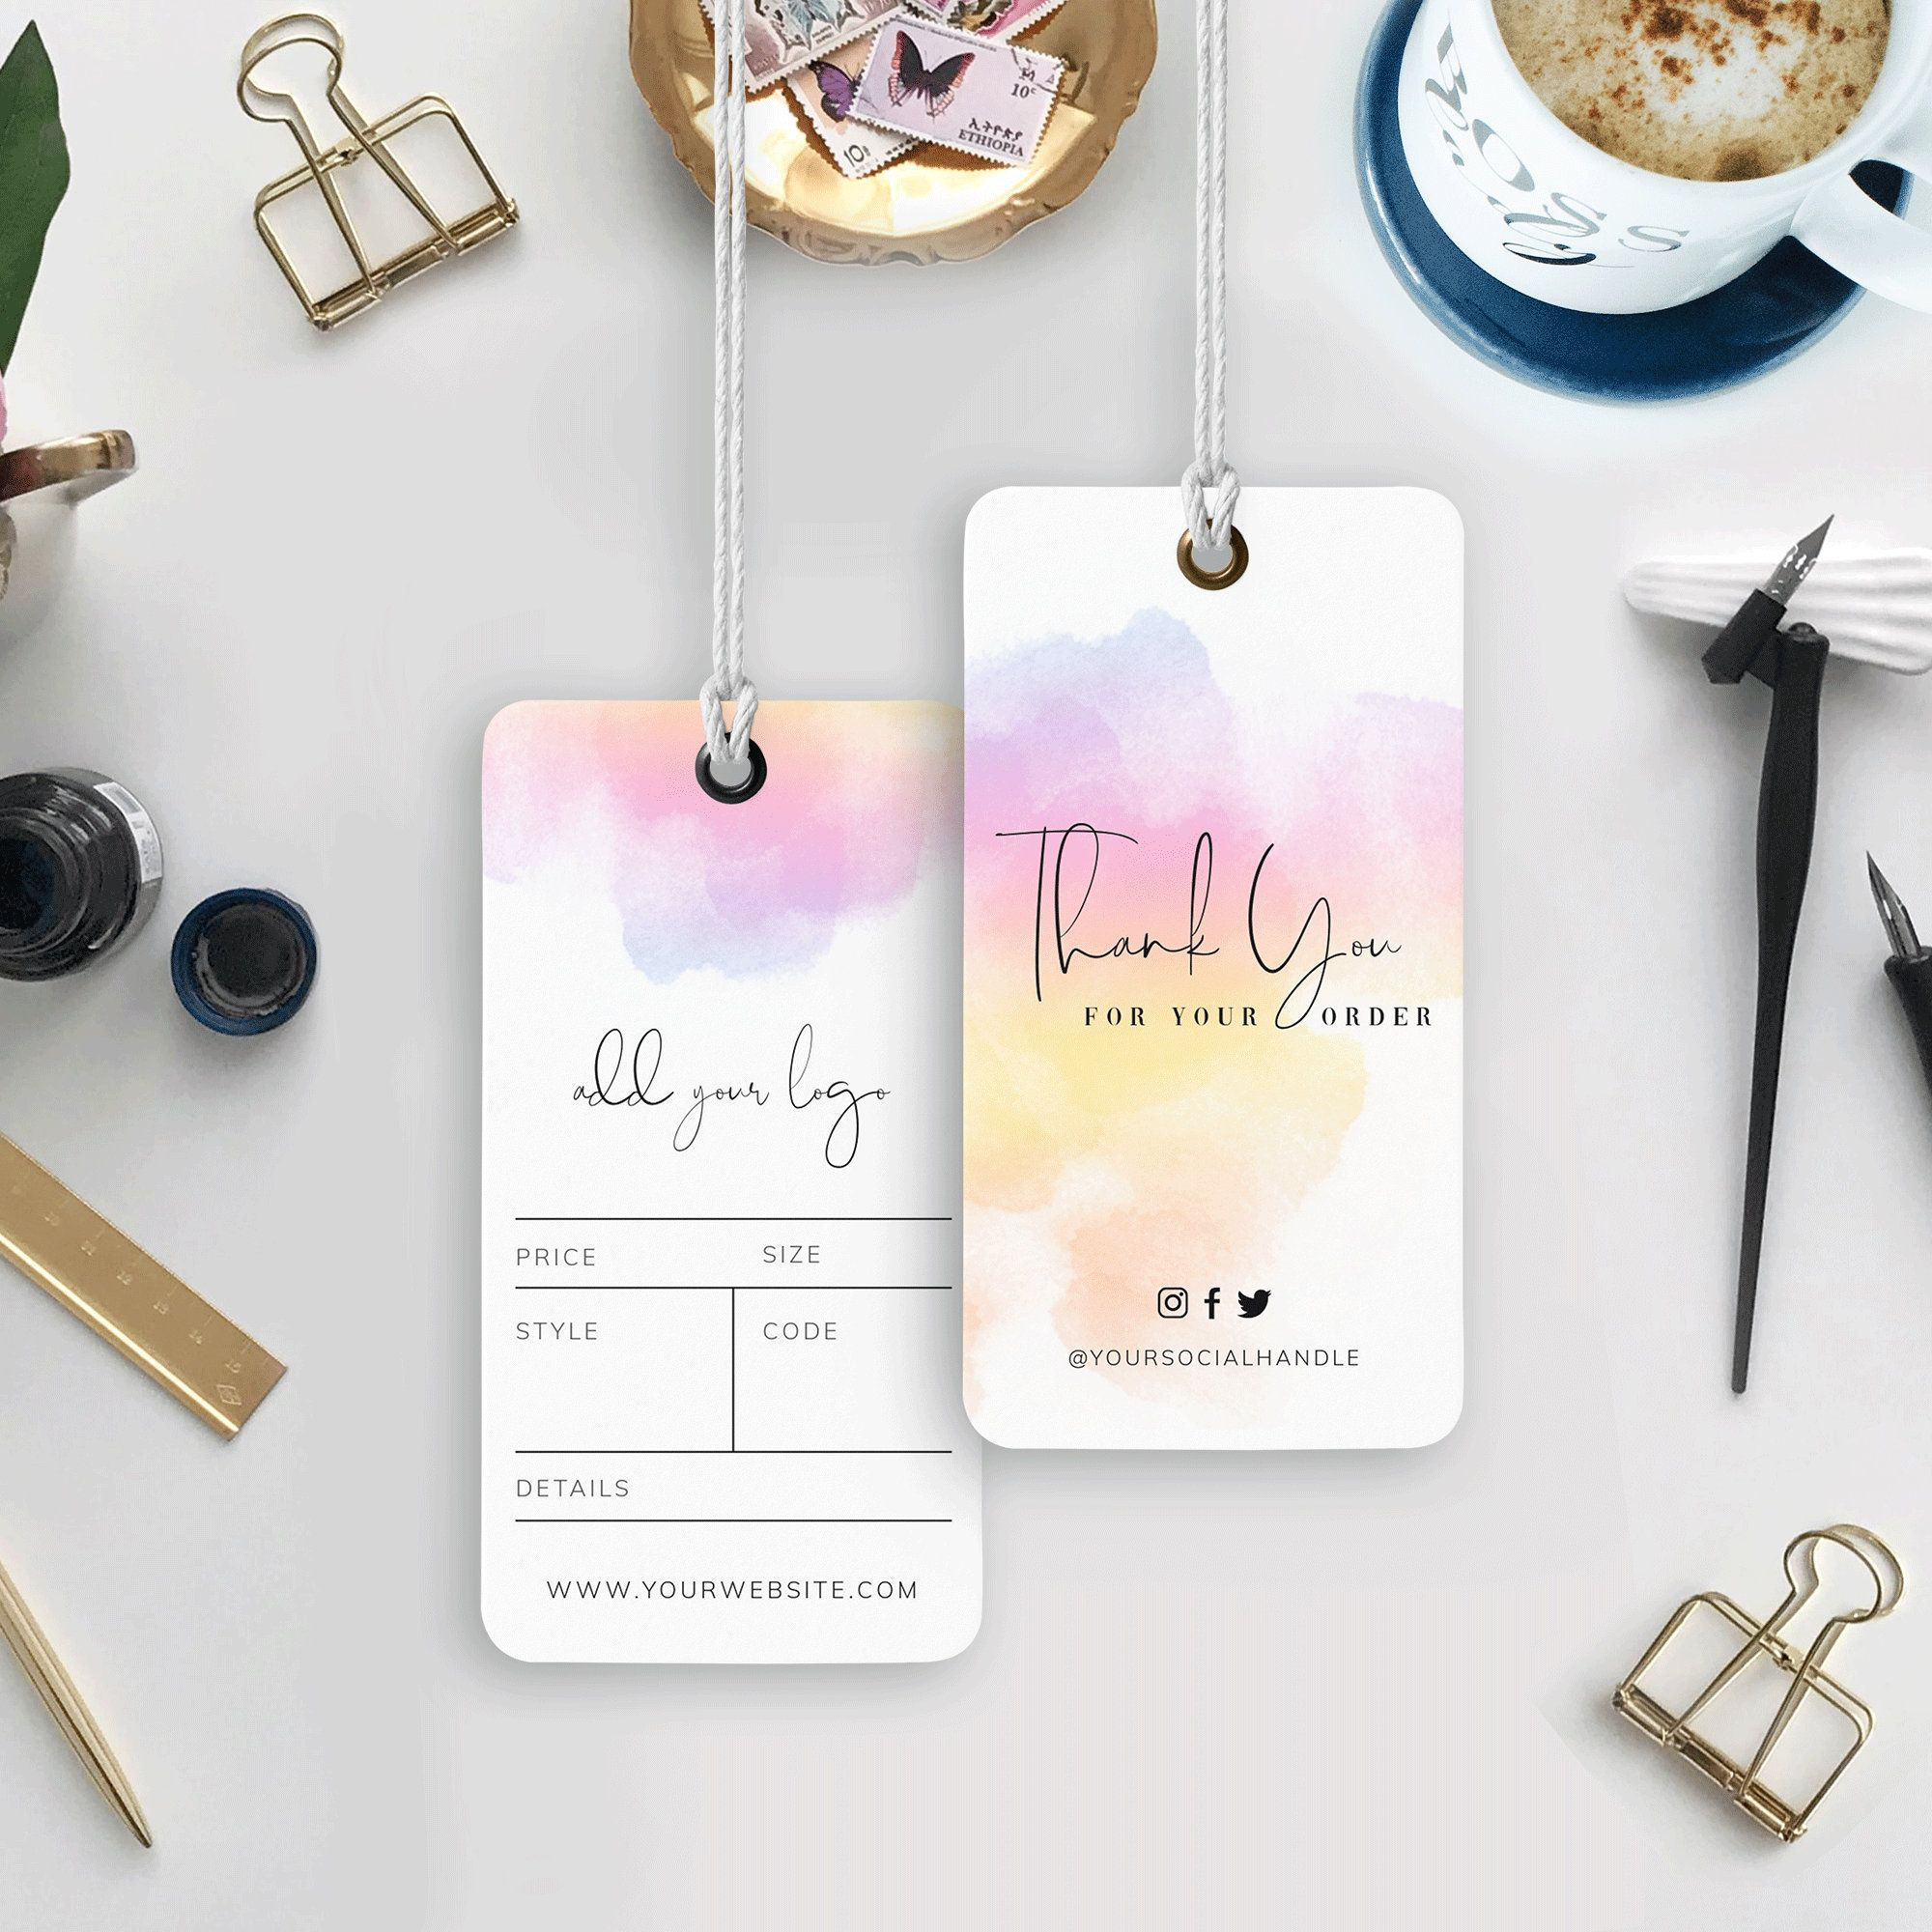 Editable Swing Tag Template Thank You For Your Order Tags Etsy In 2020 Hang Tags Tag Template Stationery Templates